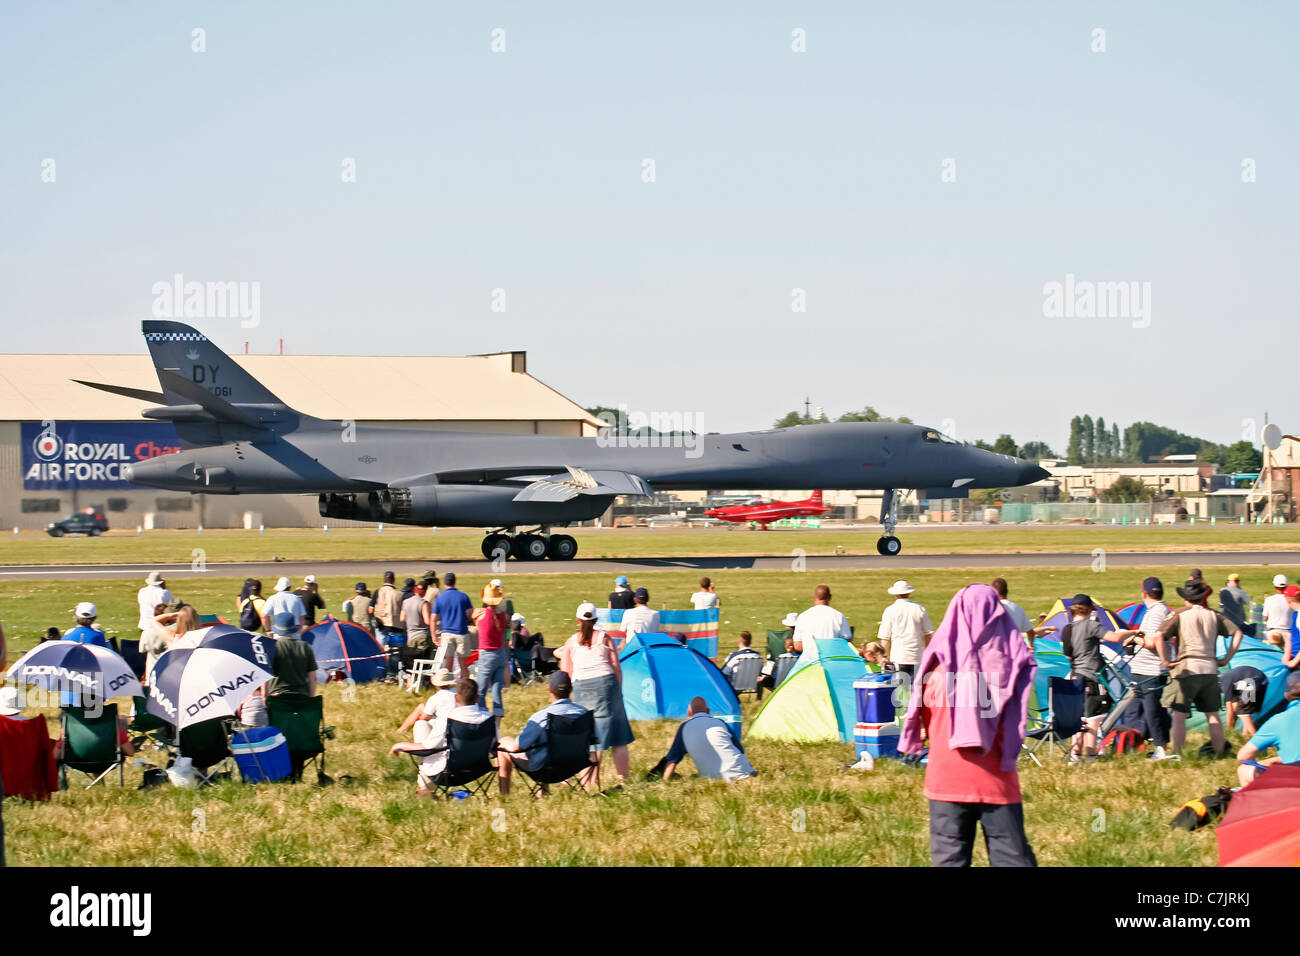 Rockwell B-1 Lancer supersonic bomber on display Royal International Air Tattoo - Stock Image